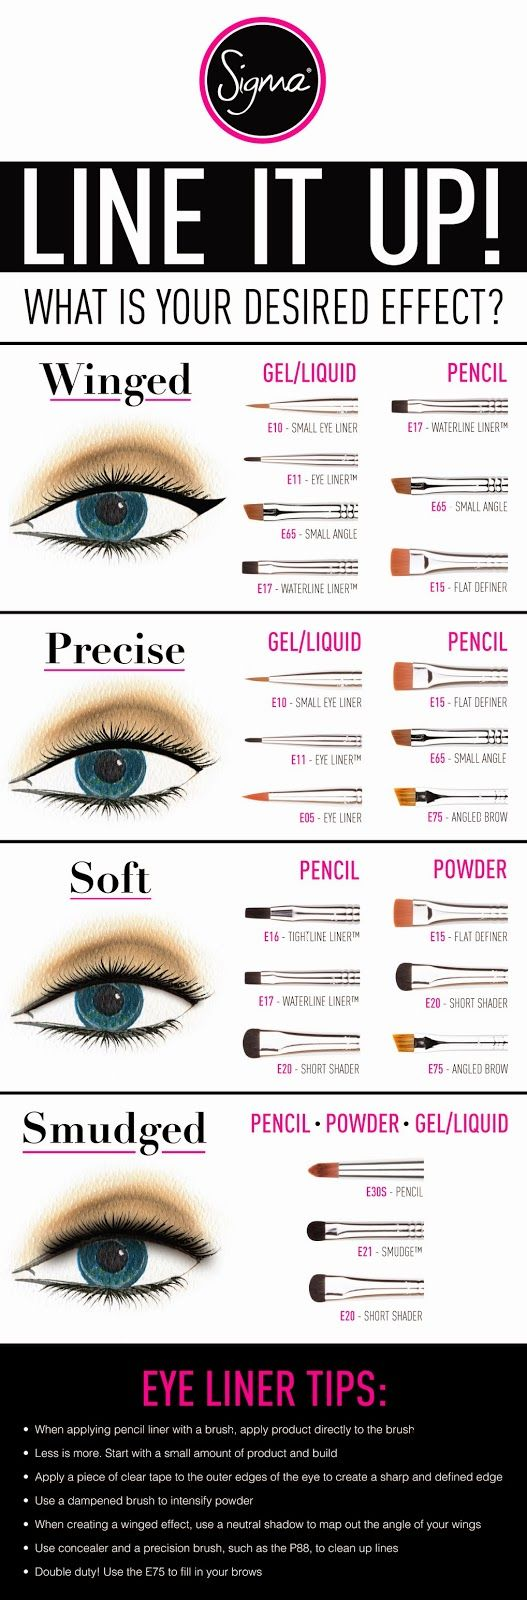 Line It Up! - Guide To Perfect Eye Liner.